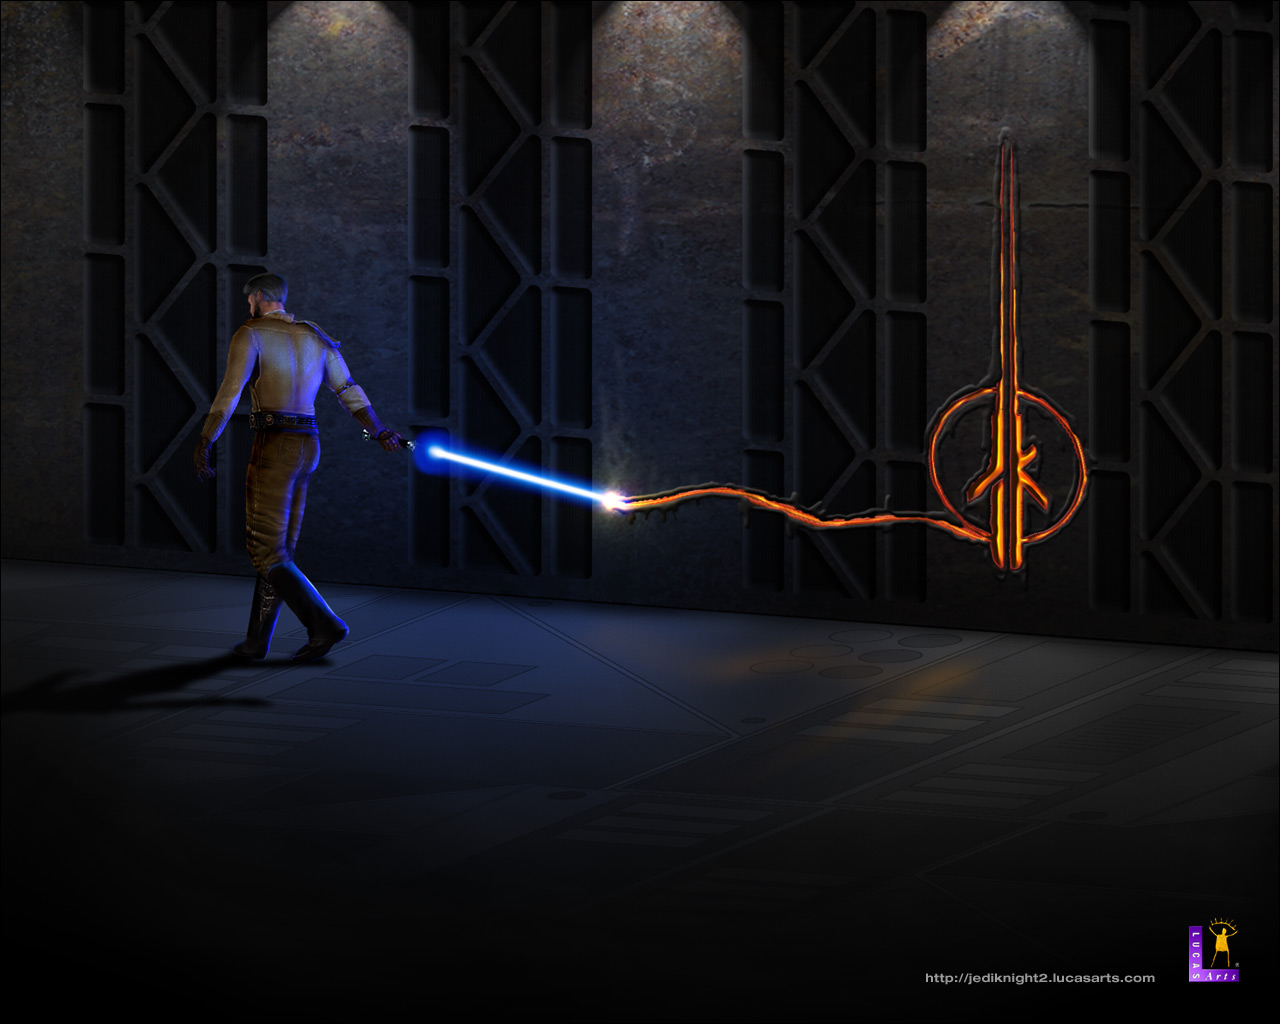 star wars jedi outcast 2 download